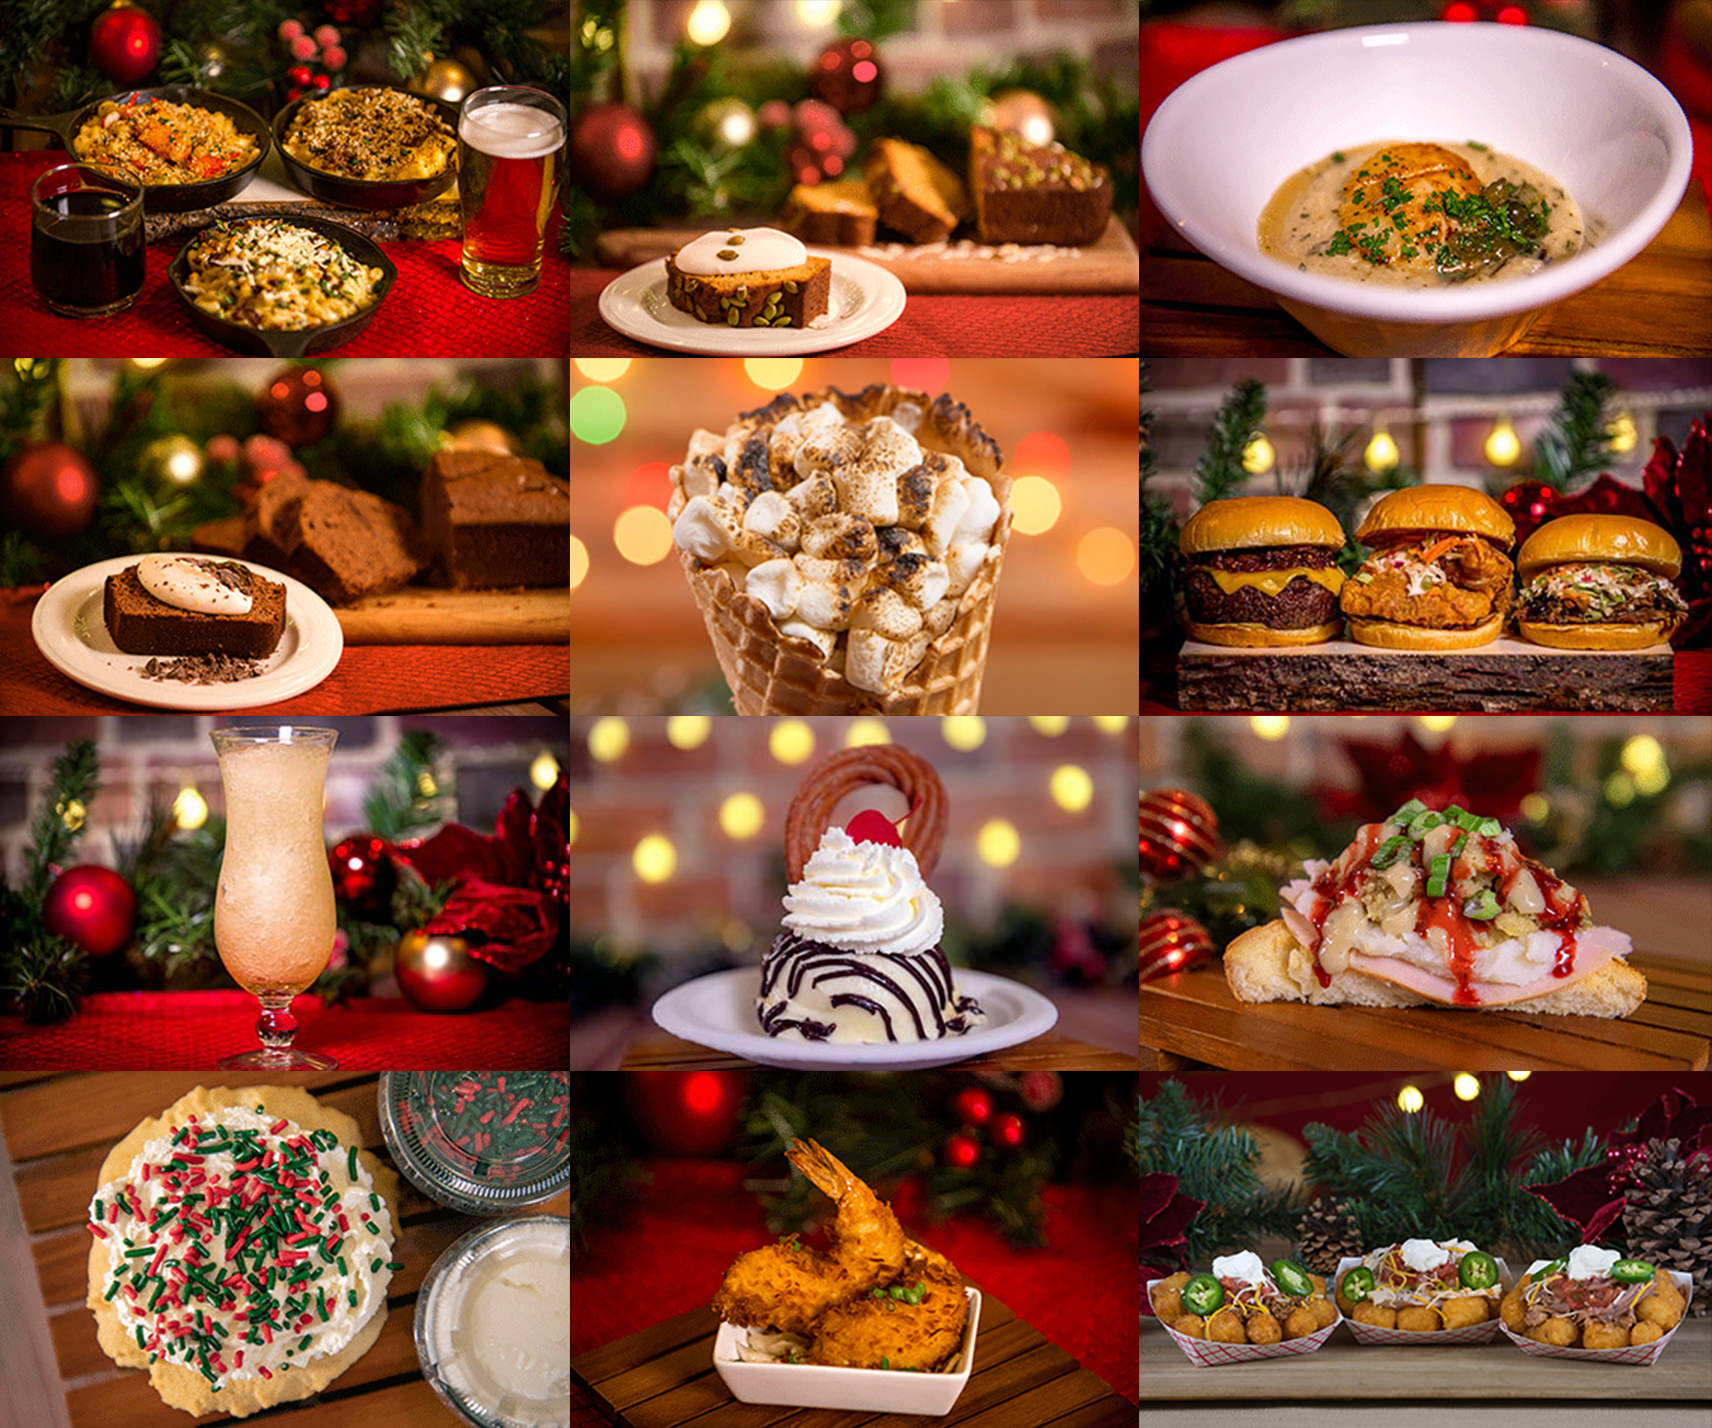 Food & Beverage Items for the 2020 Christmas Celebration at